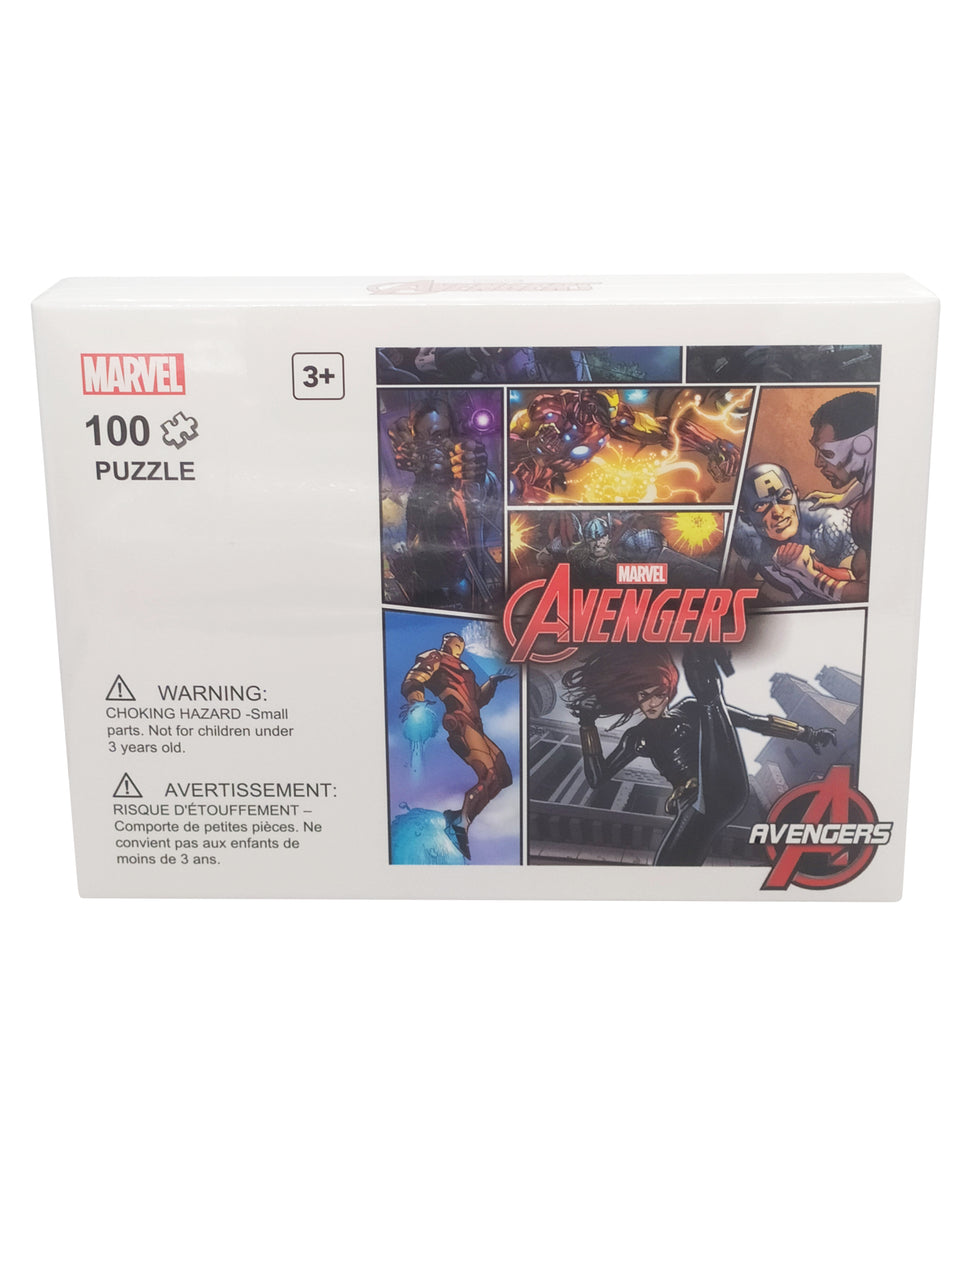 marvel puzzle 100 piece - avengers - action scene #2